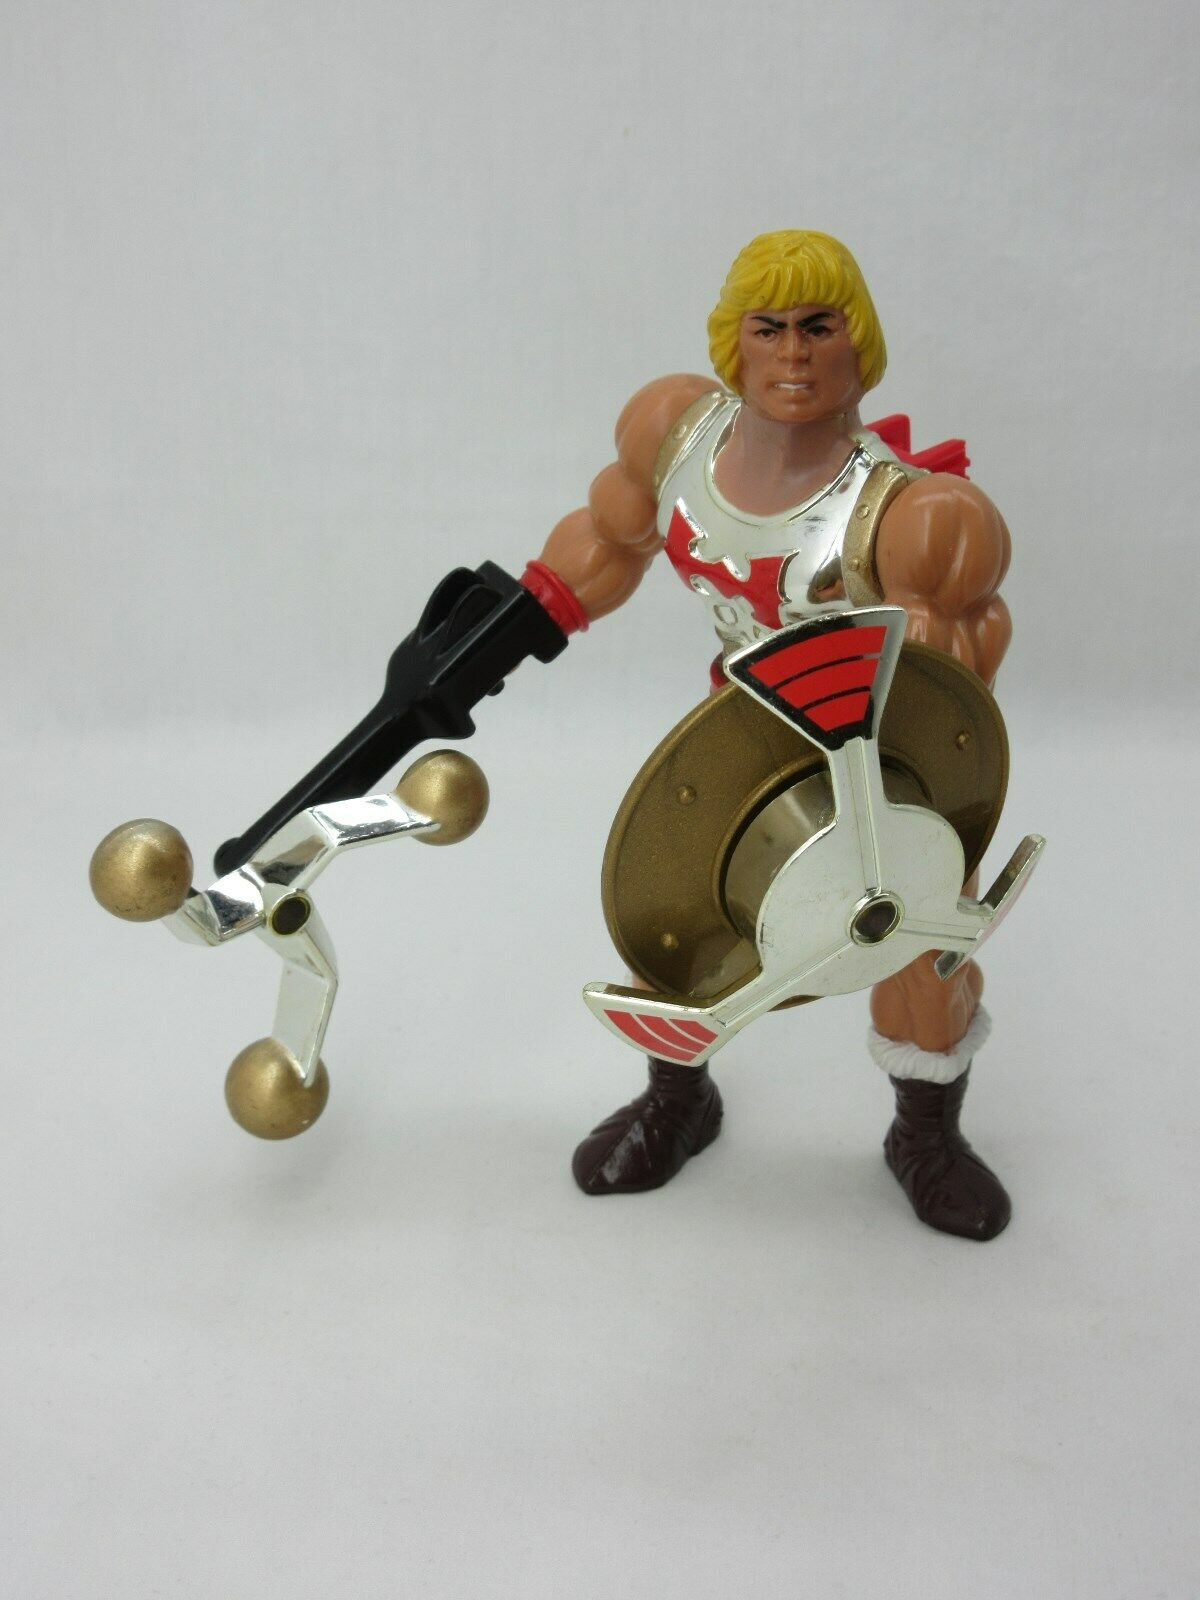 MOTU,Vintage,FLYING MOTU,Vintage,FLYING MOTU,Vintage,FLYING FISTS HE-MAN,Masters of the Universe,Complete,figure,Clip edfec9